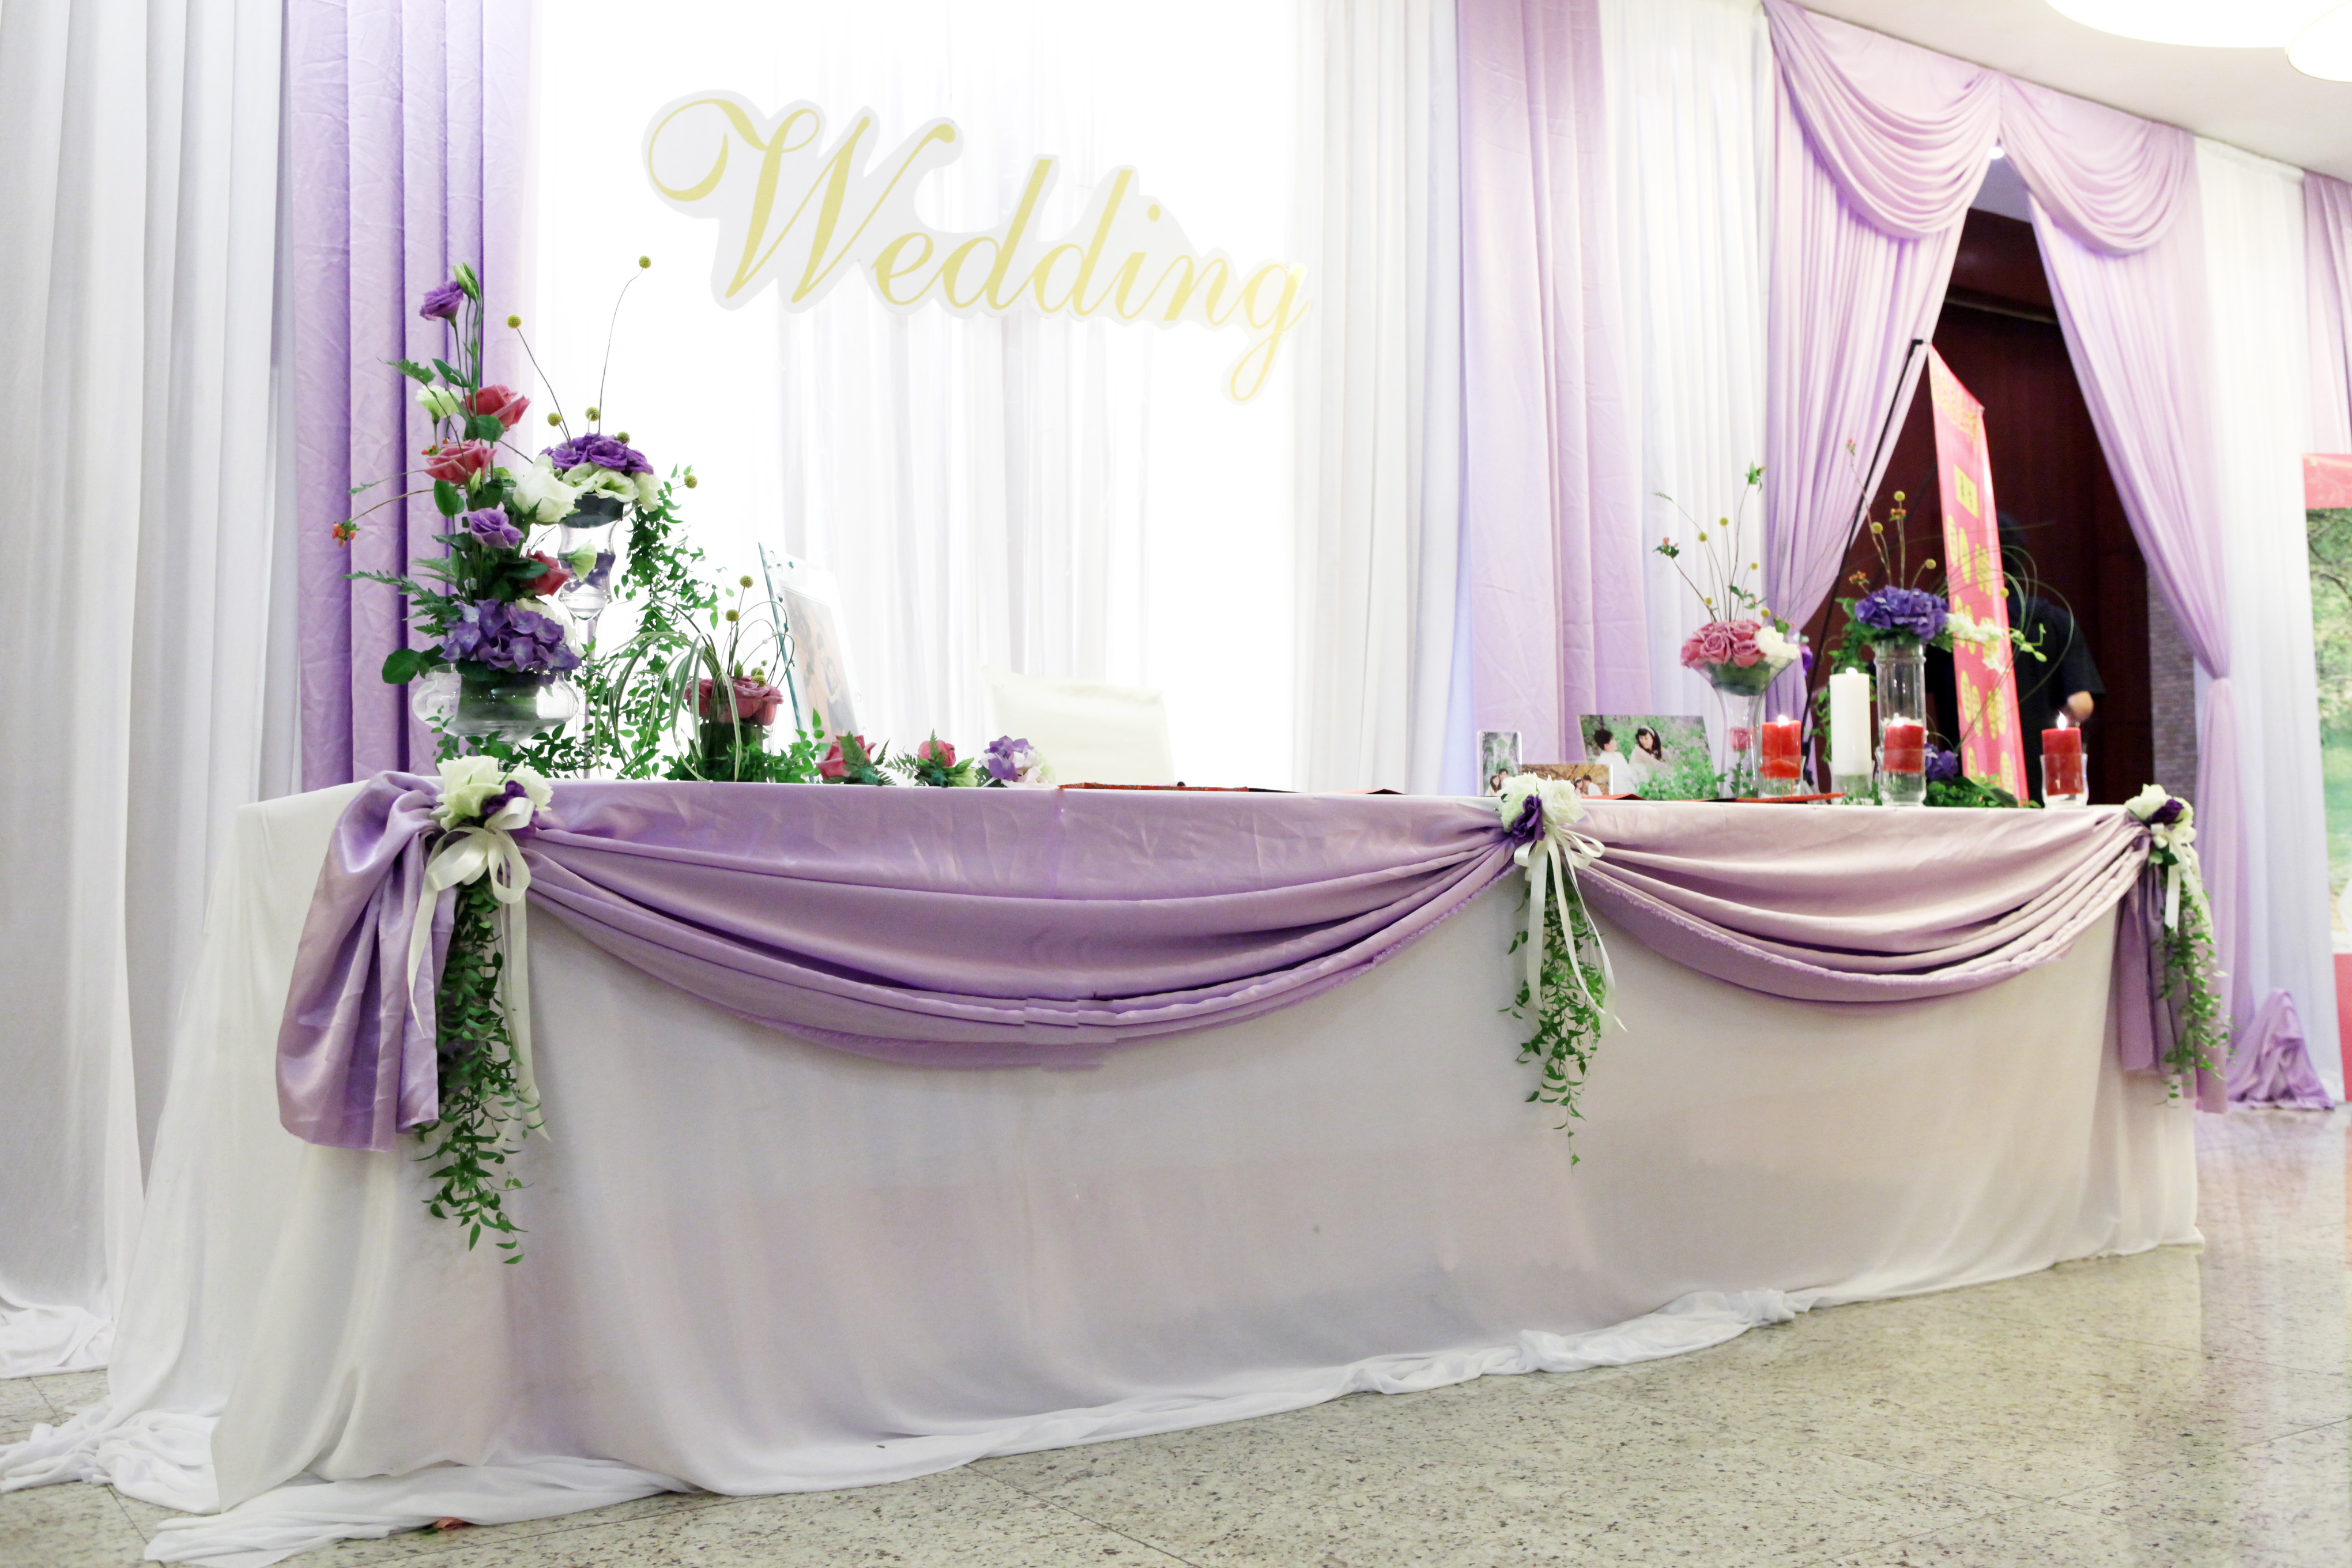 Pipe and drape of wedding backdrop